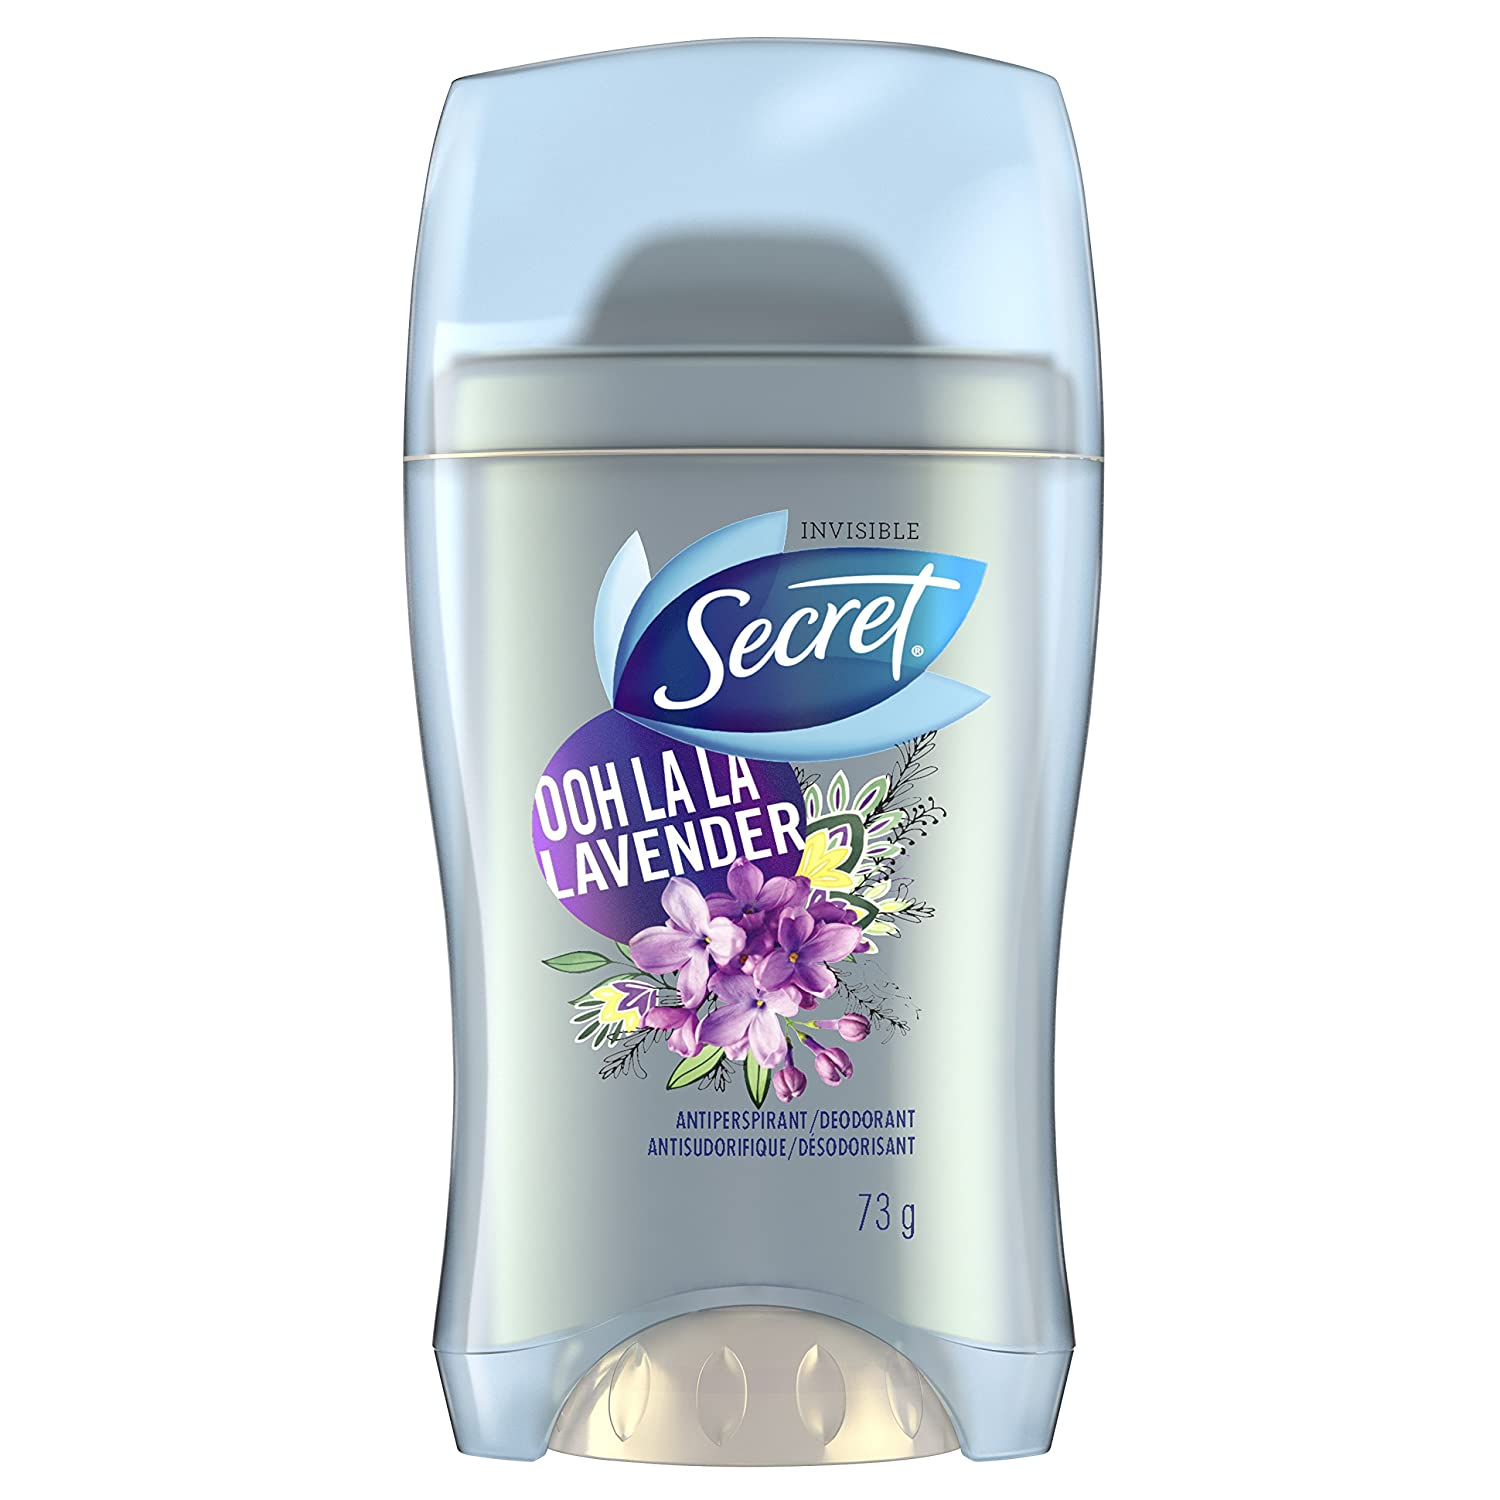 Secret Invisible Solid Antiperspirant And Deodorant Ooh La La Lavender 73g Procter and Gamble